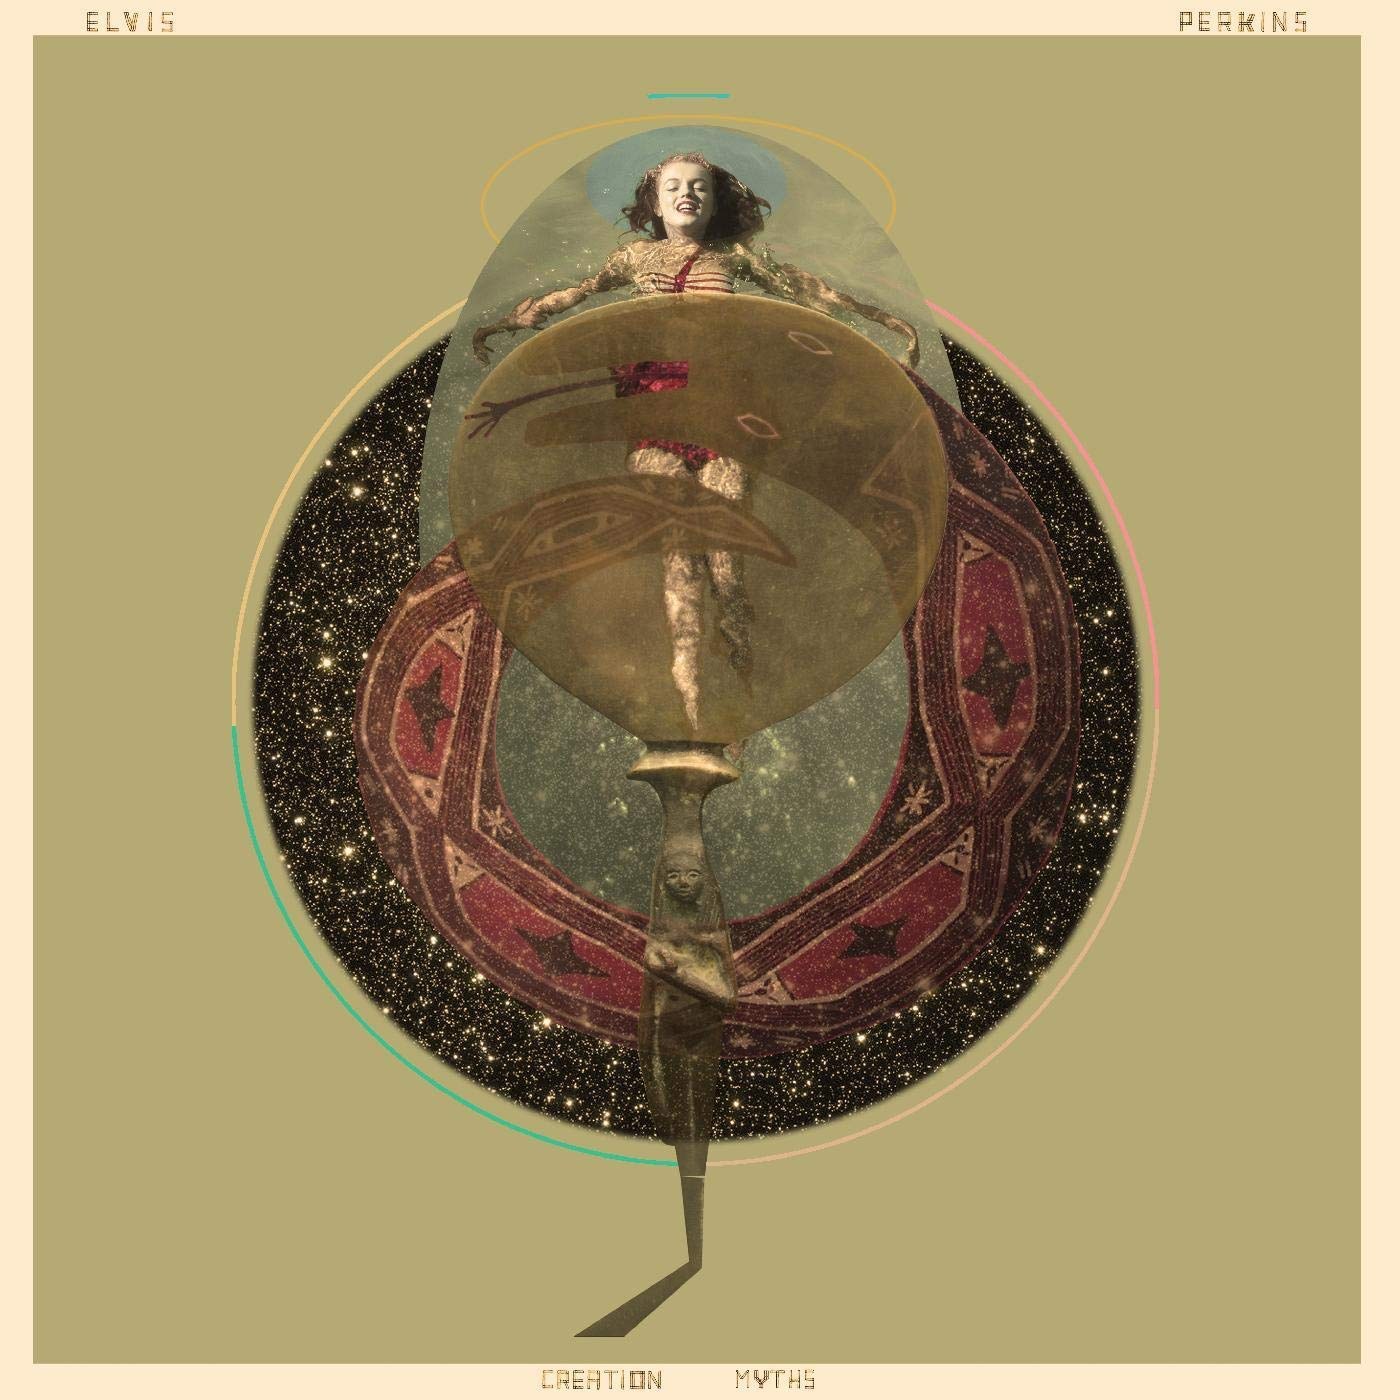 Elvis Perkins: Creation Myths